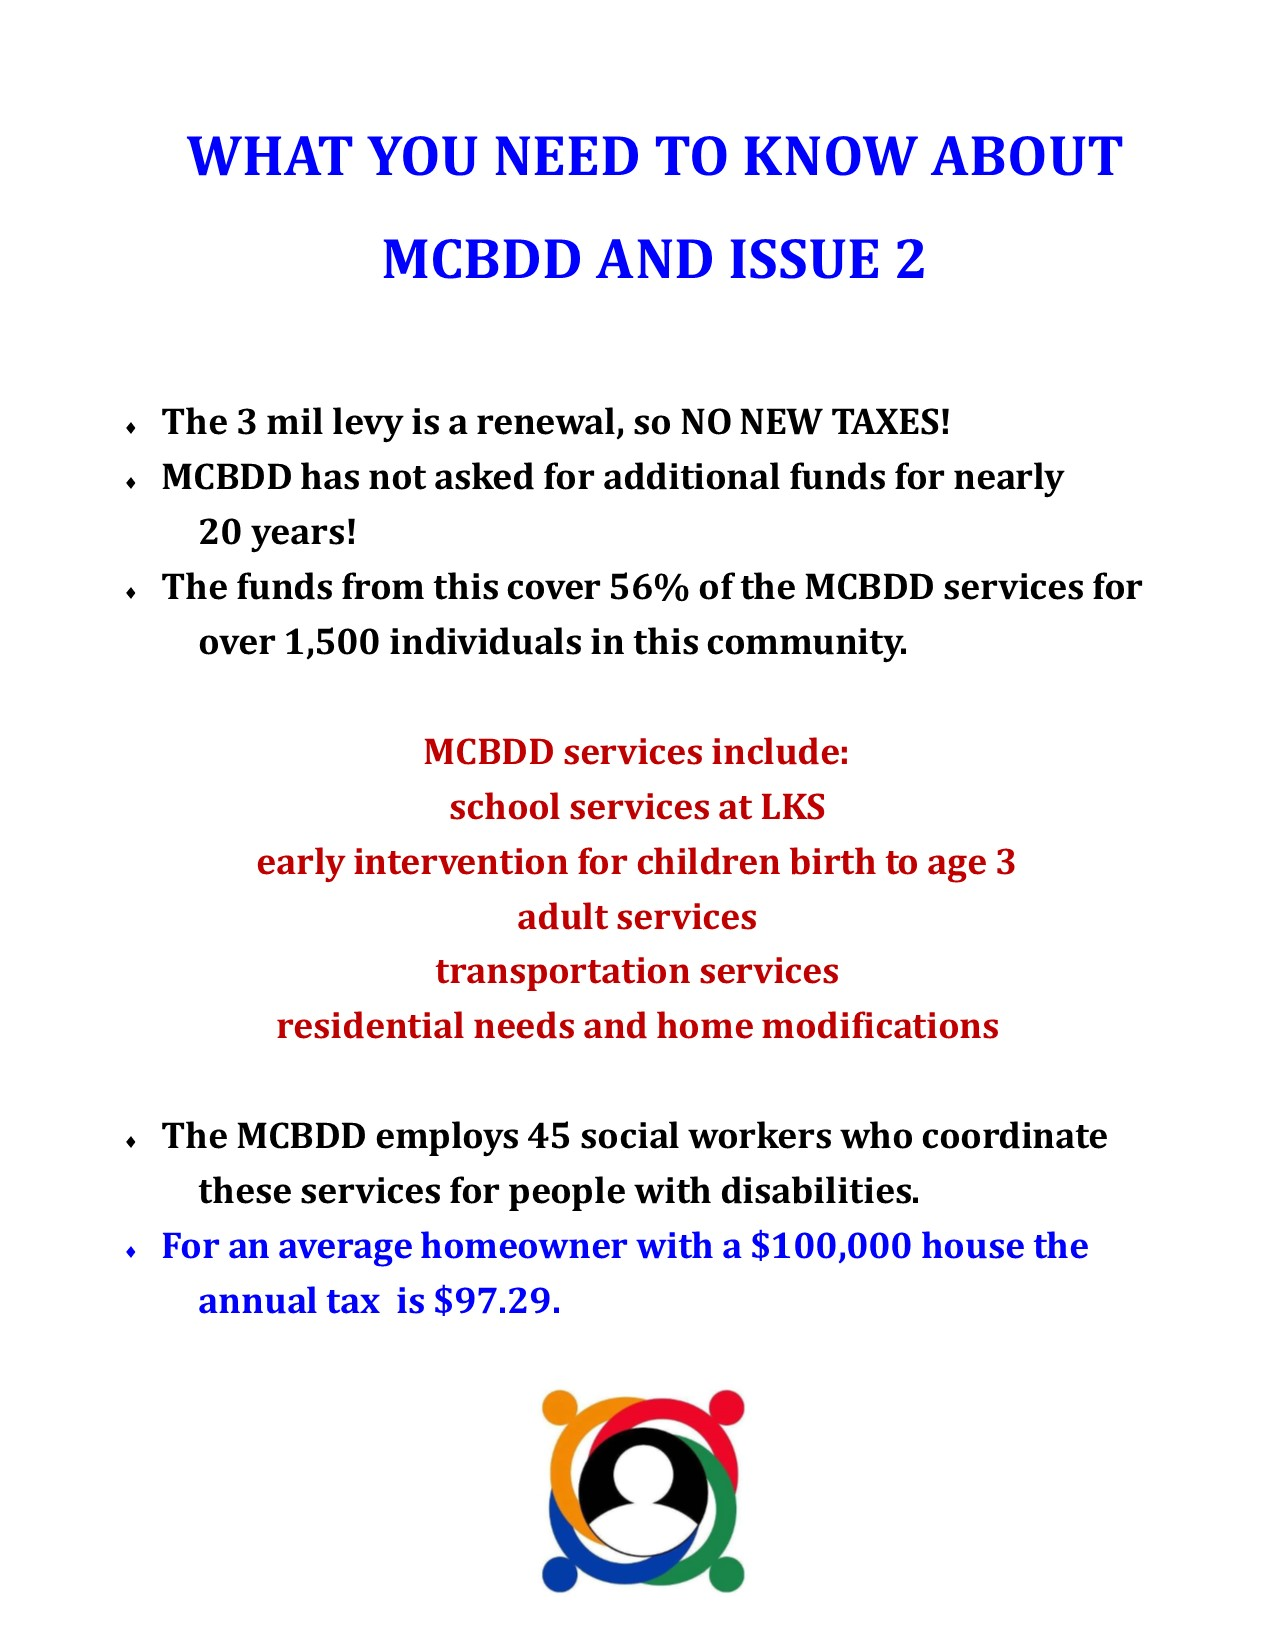 MCBDD Issue 2-November 3, 2020